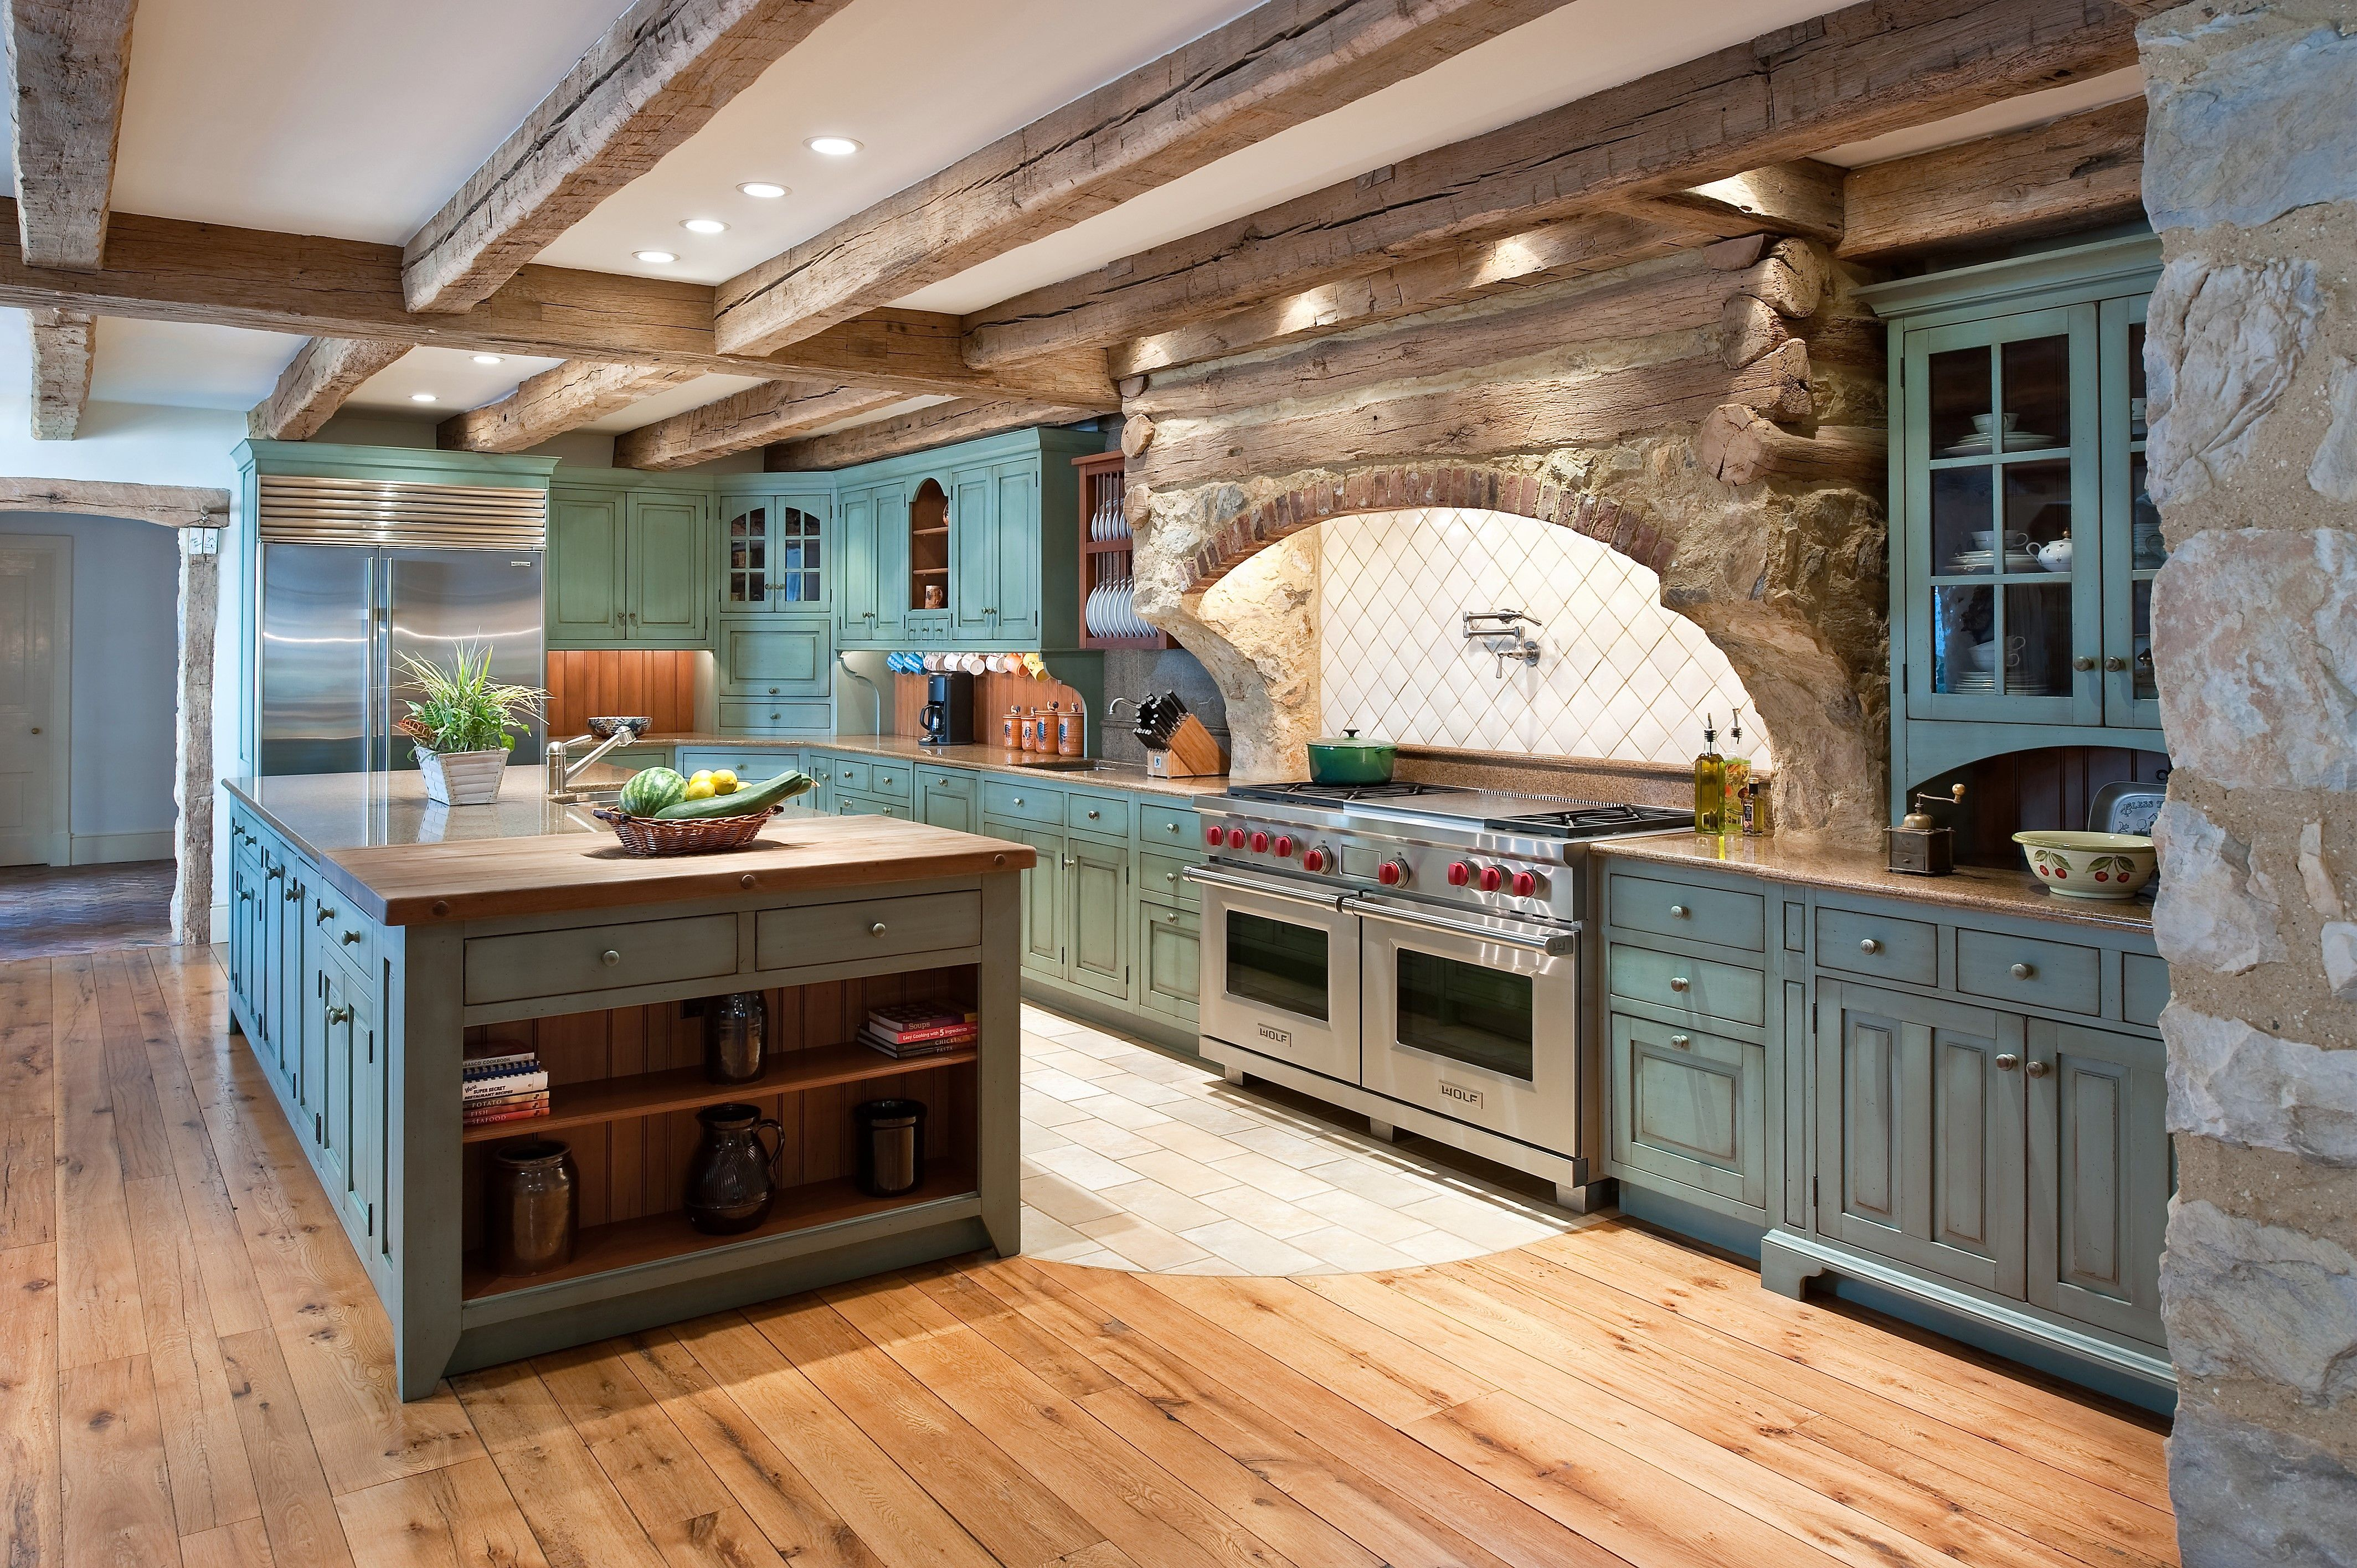 17 jaw dropping barndominium kitchens with links commentary farmhouse kitchen design modern on kitchen remodel modern farmhouse id=62481